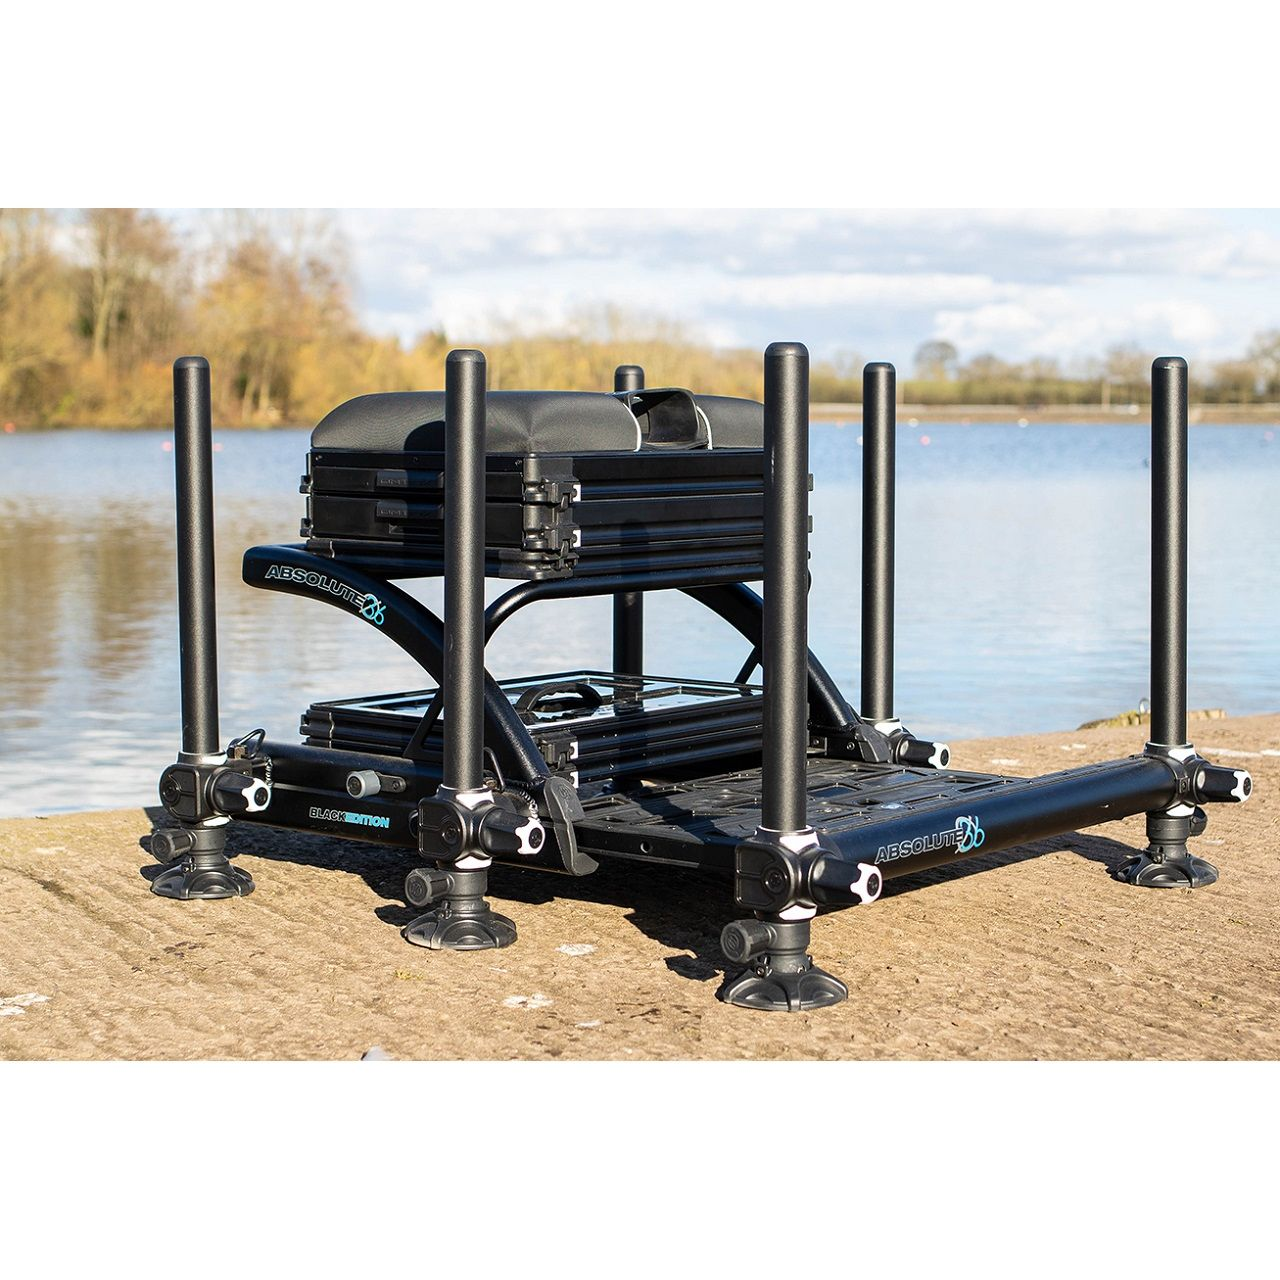 preston ABSOLUTE 36 SEATBOX BLACK EDITION P0120003_3.jpg